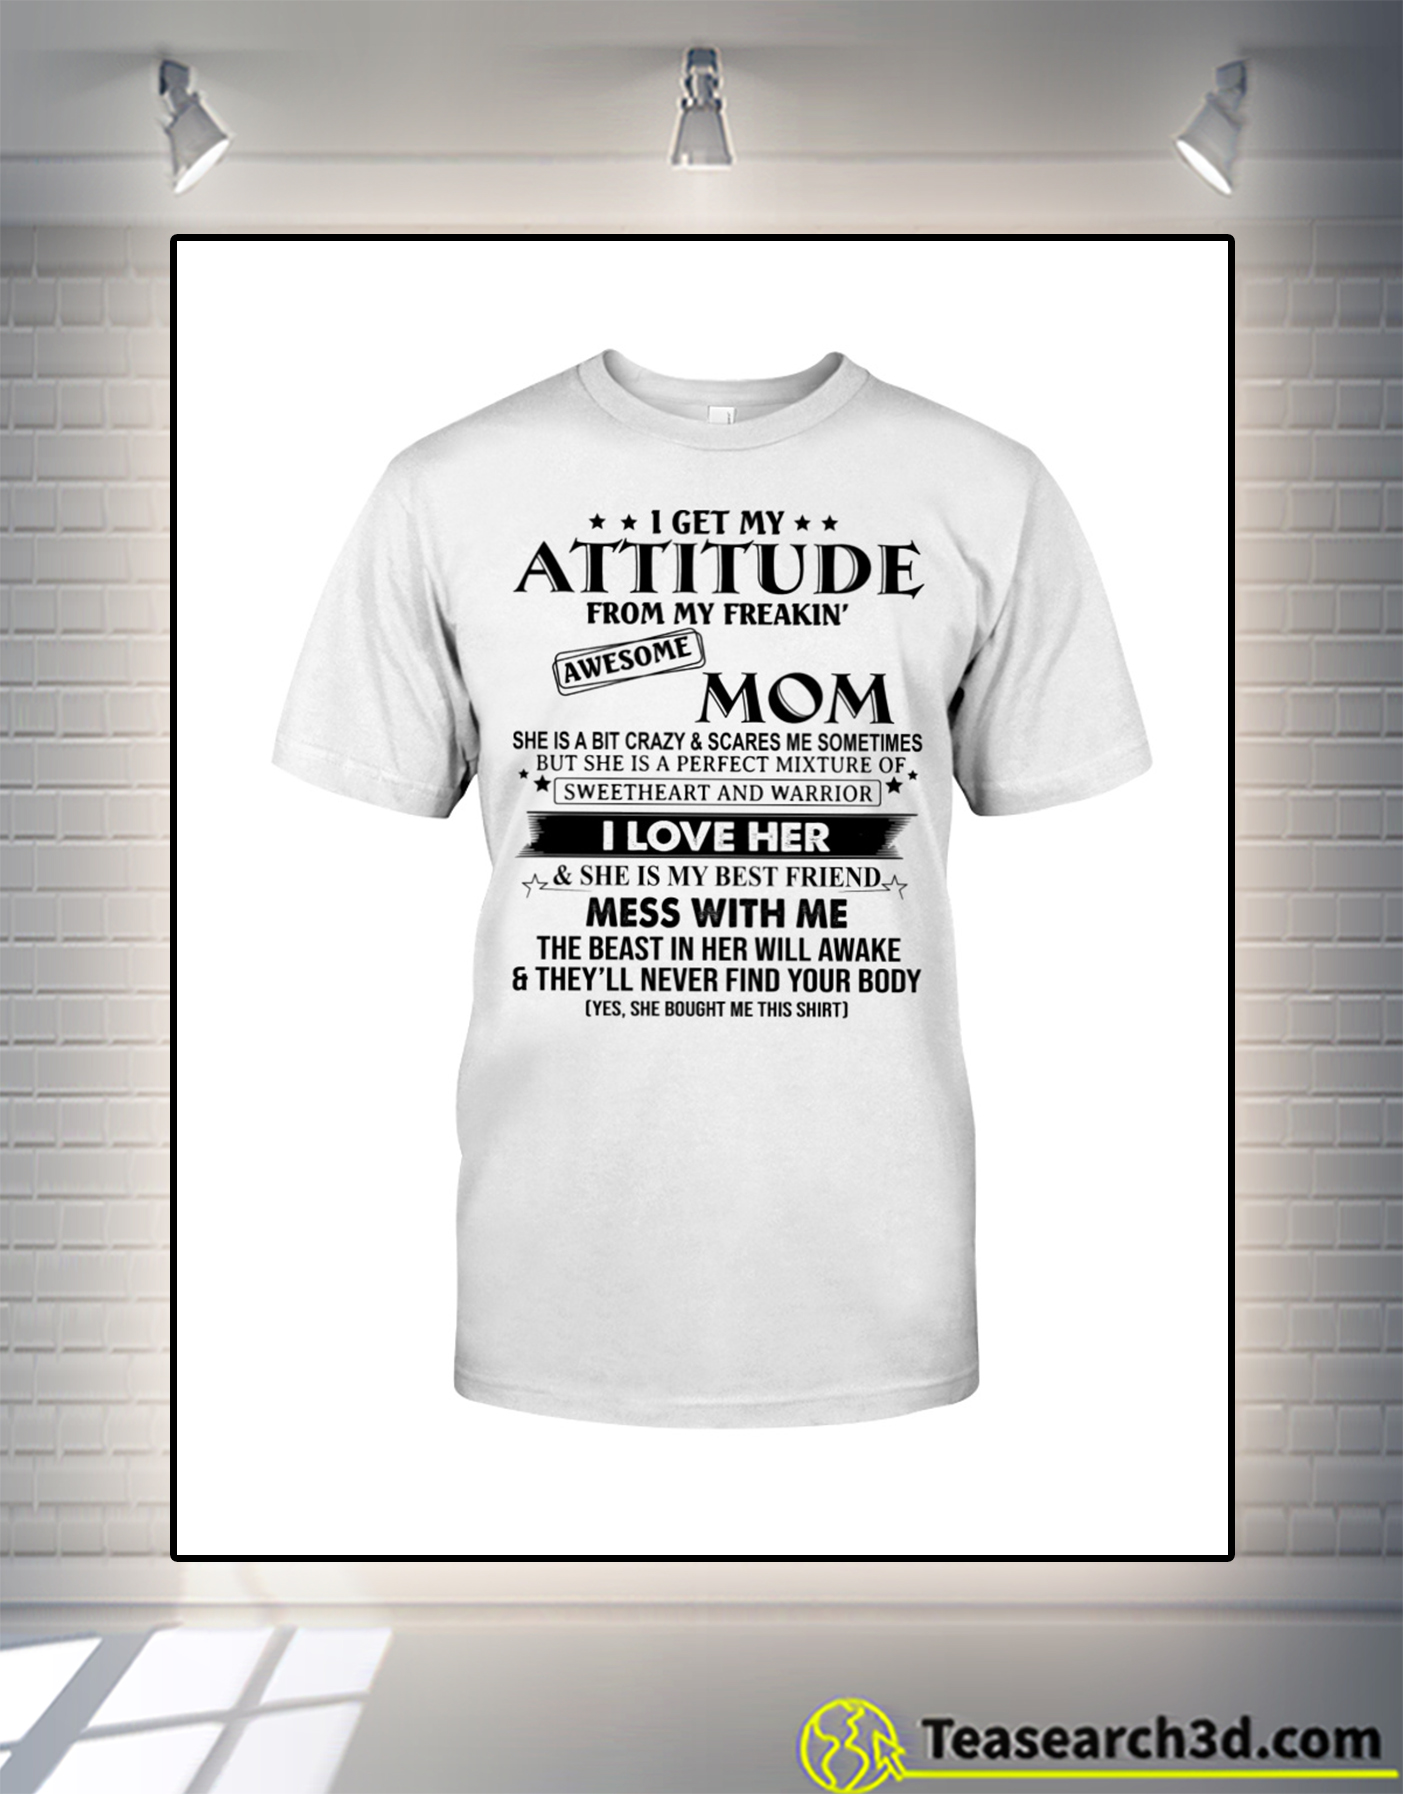 I get my attitude from my freakin' awesome mom t-shirt